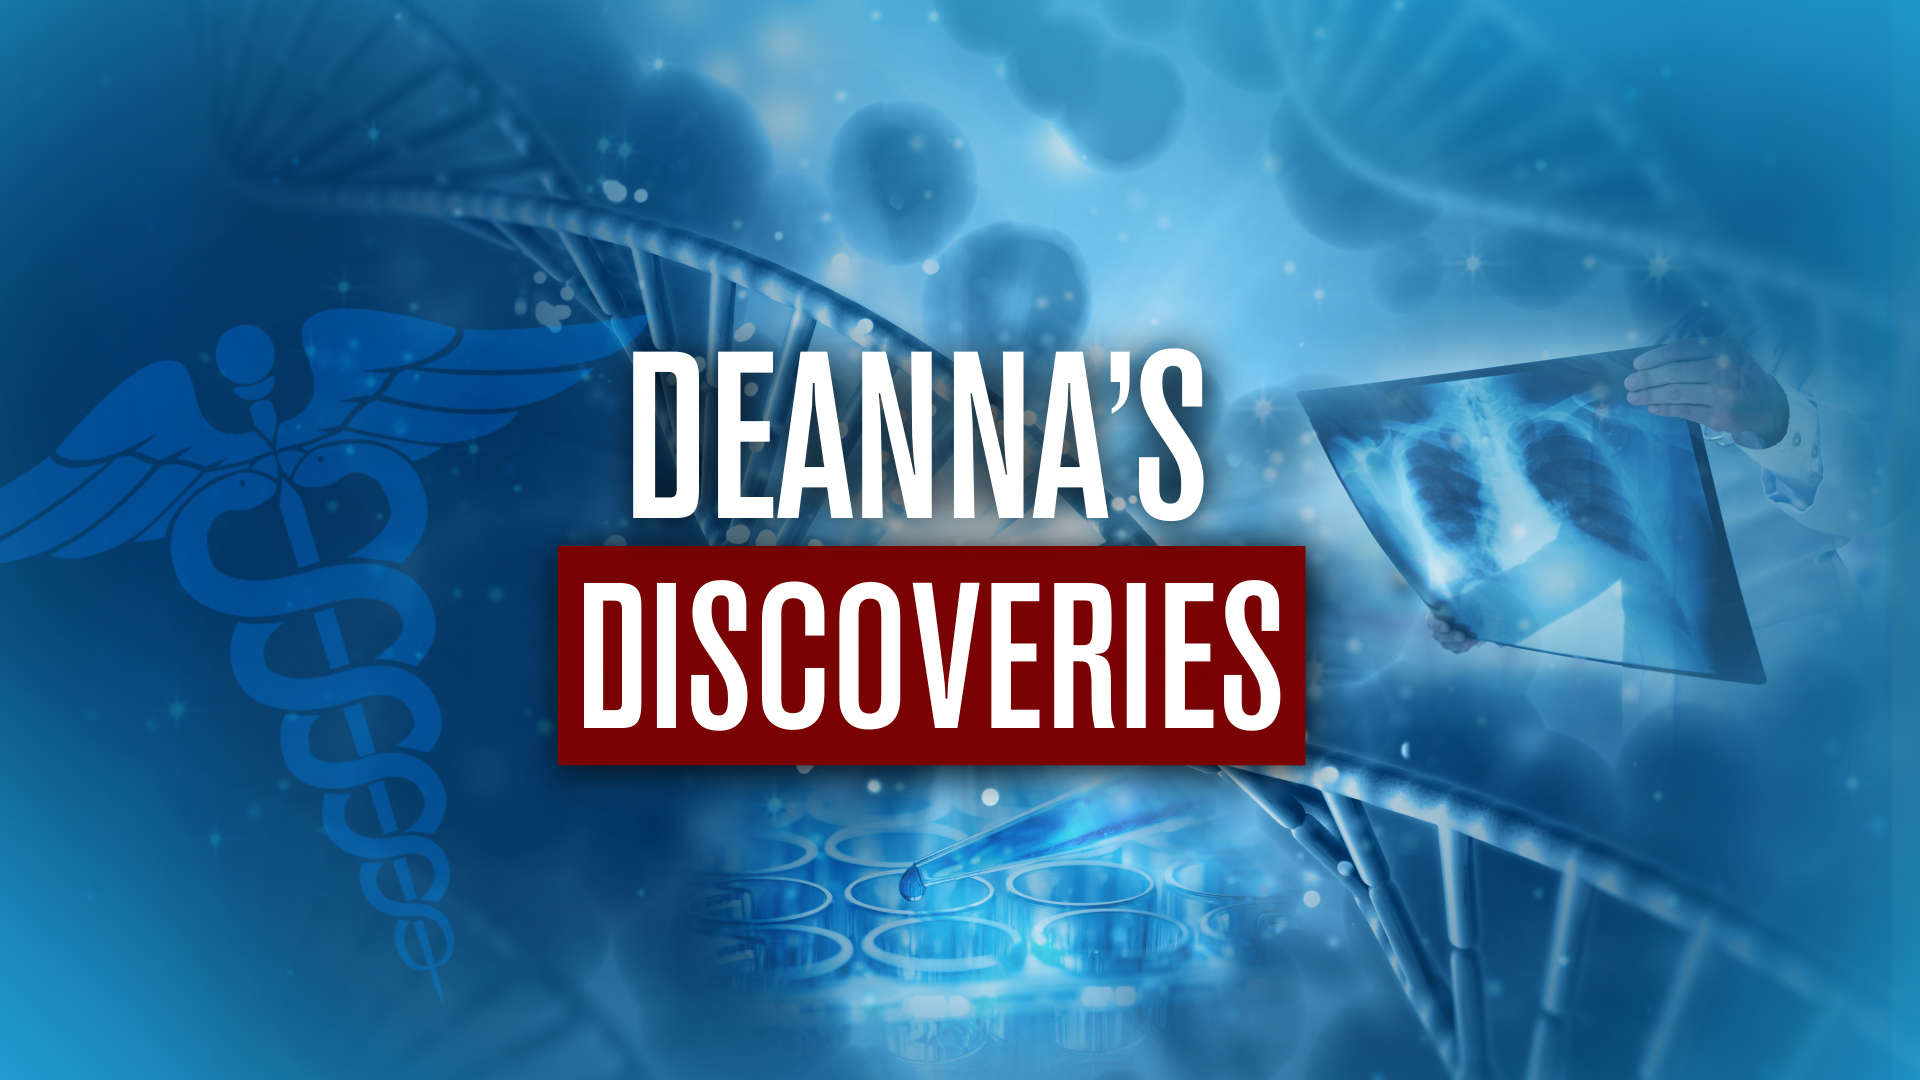 Deanna's Discoveries